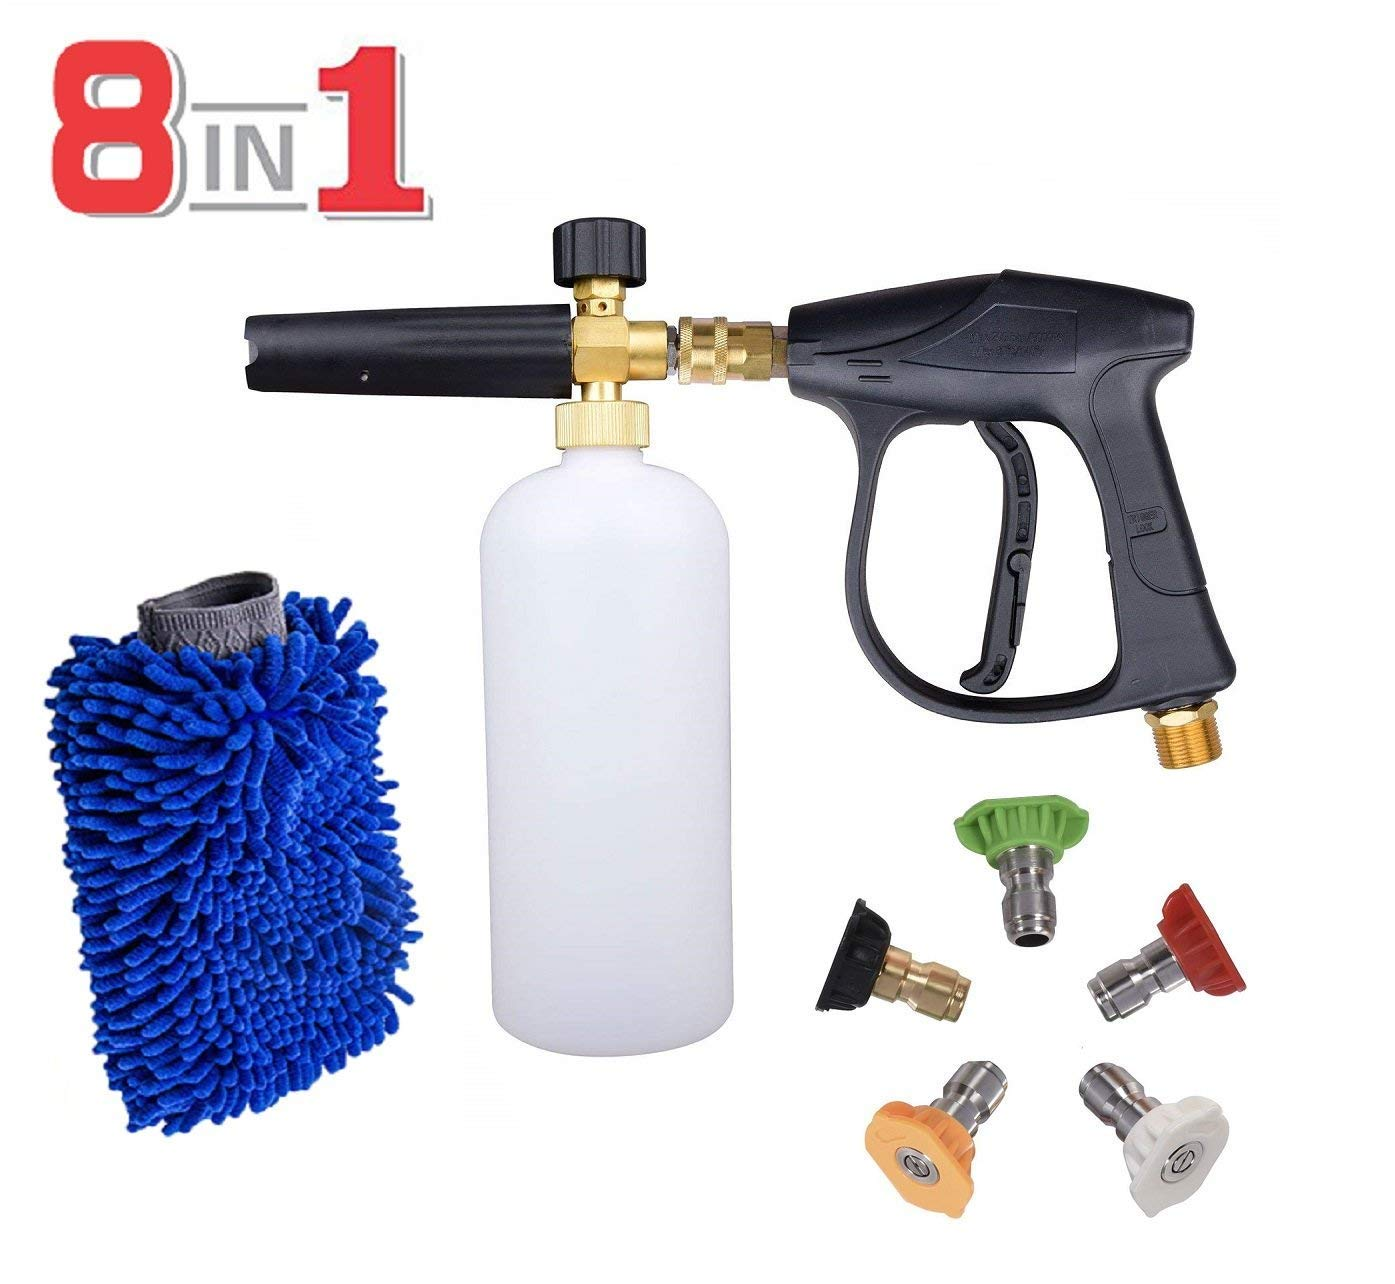 AYAOQIANG Snow Foam Cannon Adjustable Pressure Washer 1 Liter Bottle, Snow Foam Lance with 1/4 Quick Connector Foam Blaster for Pressure Washer Gun,5 Pressure Washer Nozzles for Cleaning with Glove by AYAOQIANG